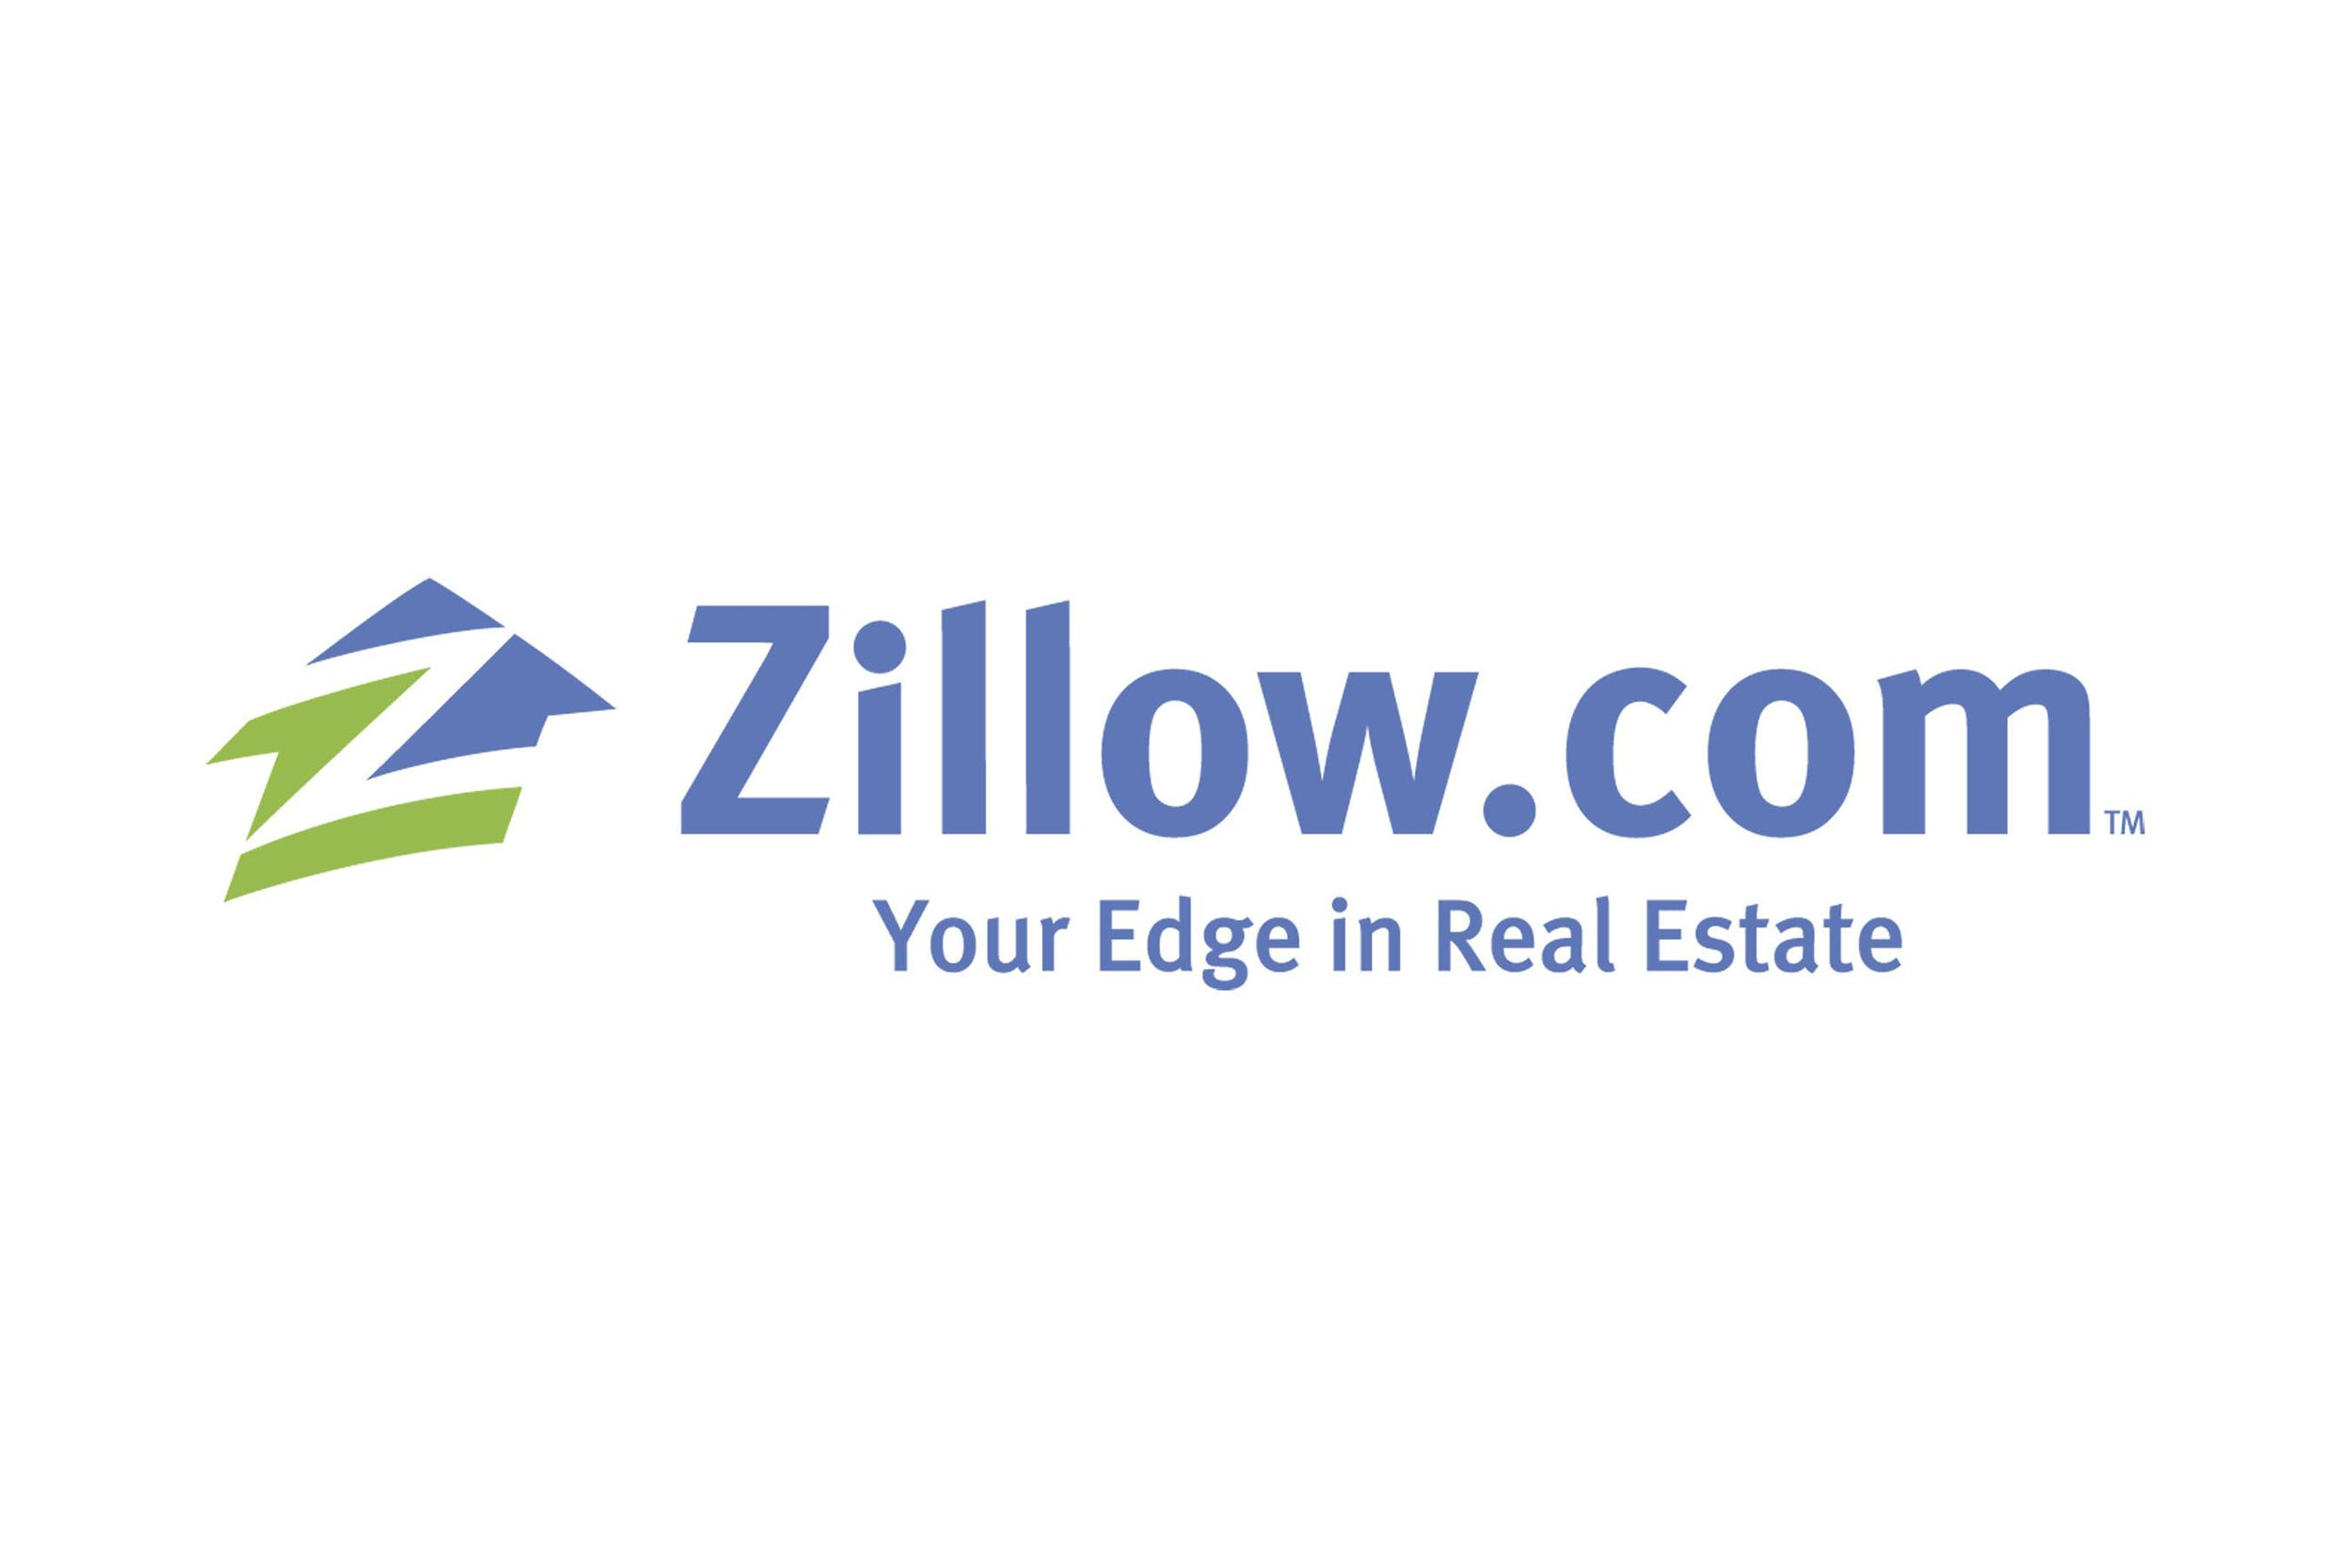 Real estate takeover zillow said looking to acquire rival for Zillow site